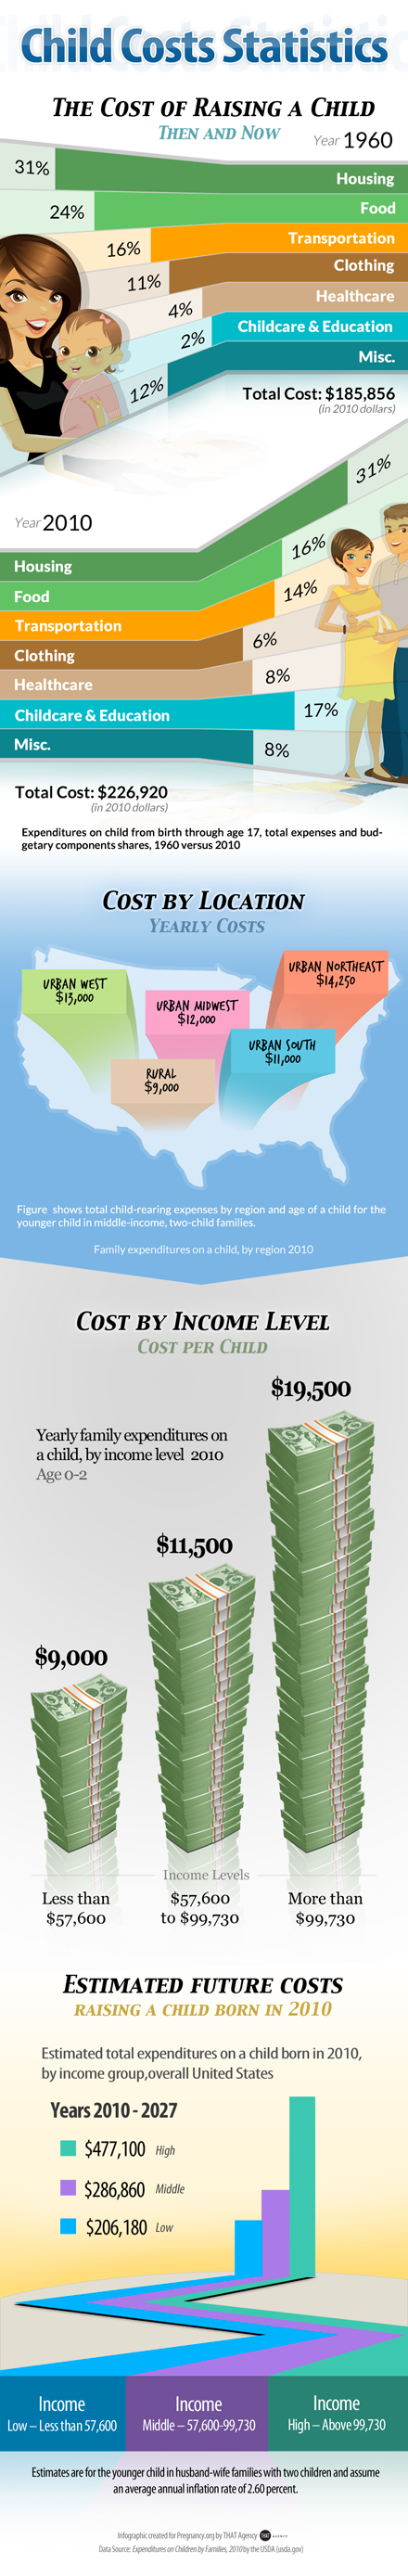 Pregnancy.Org-Cost-of-Children-Info-GFX